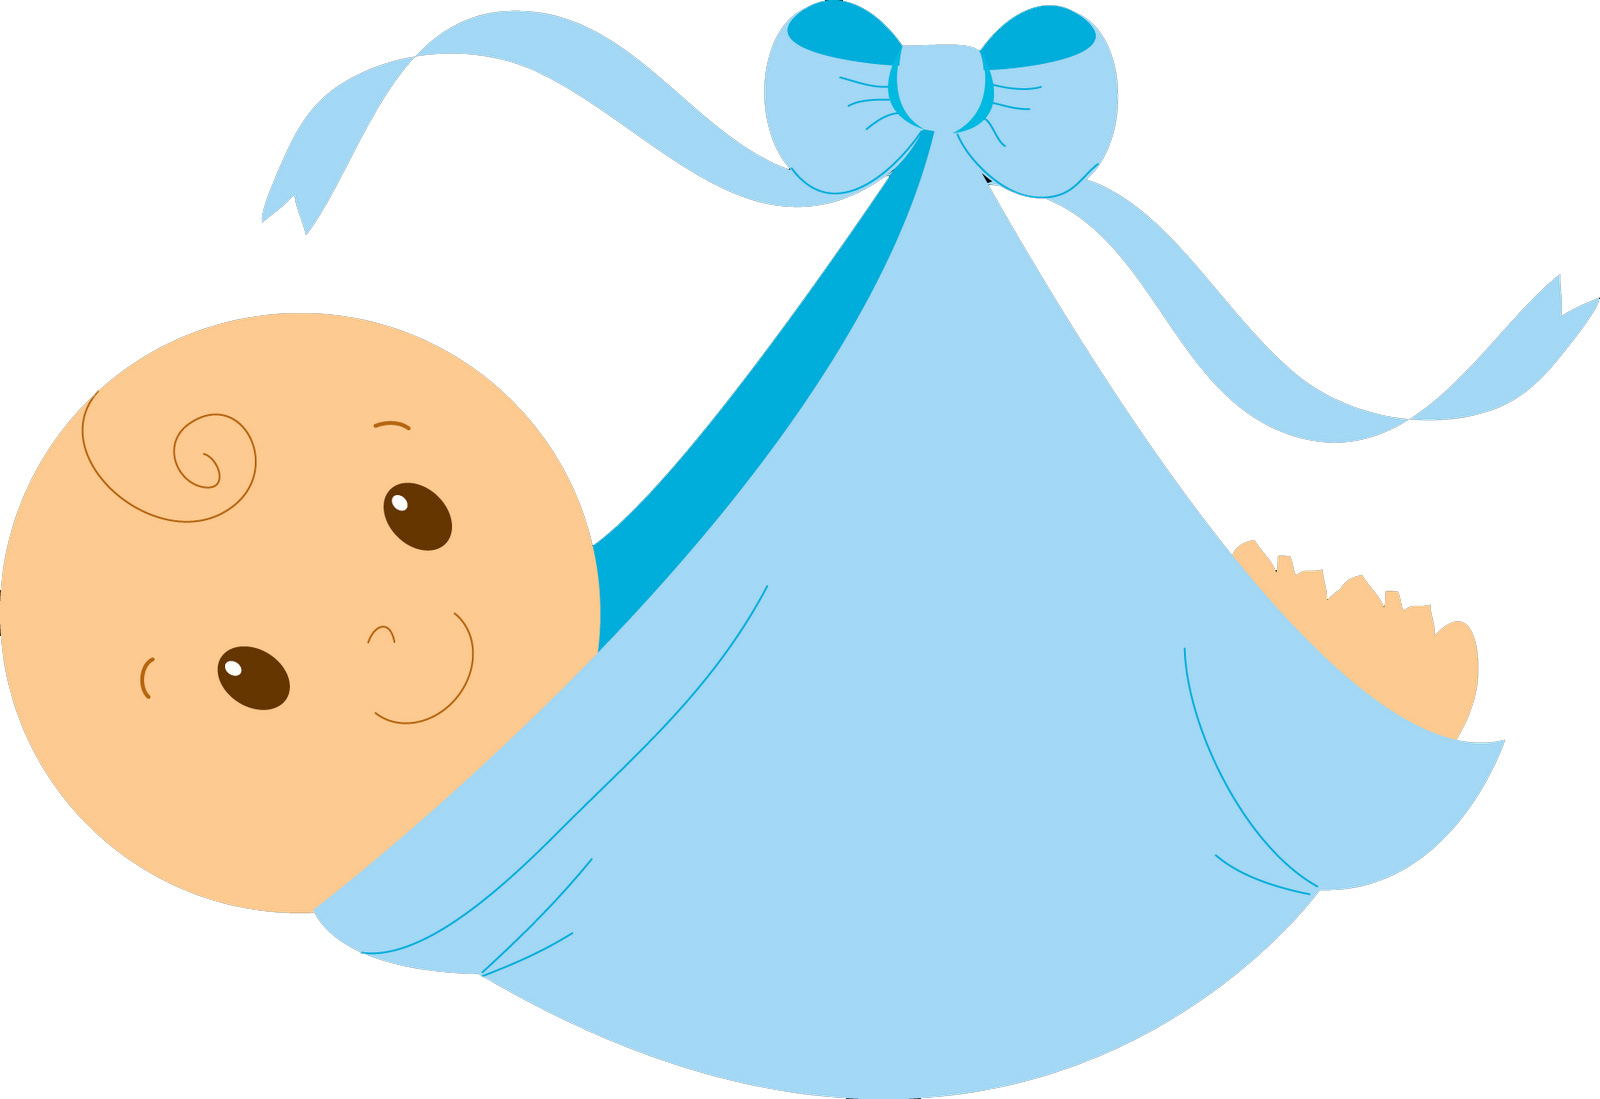 Cartoon Baby Clipart at GetDrawings.com.